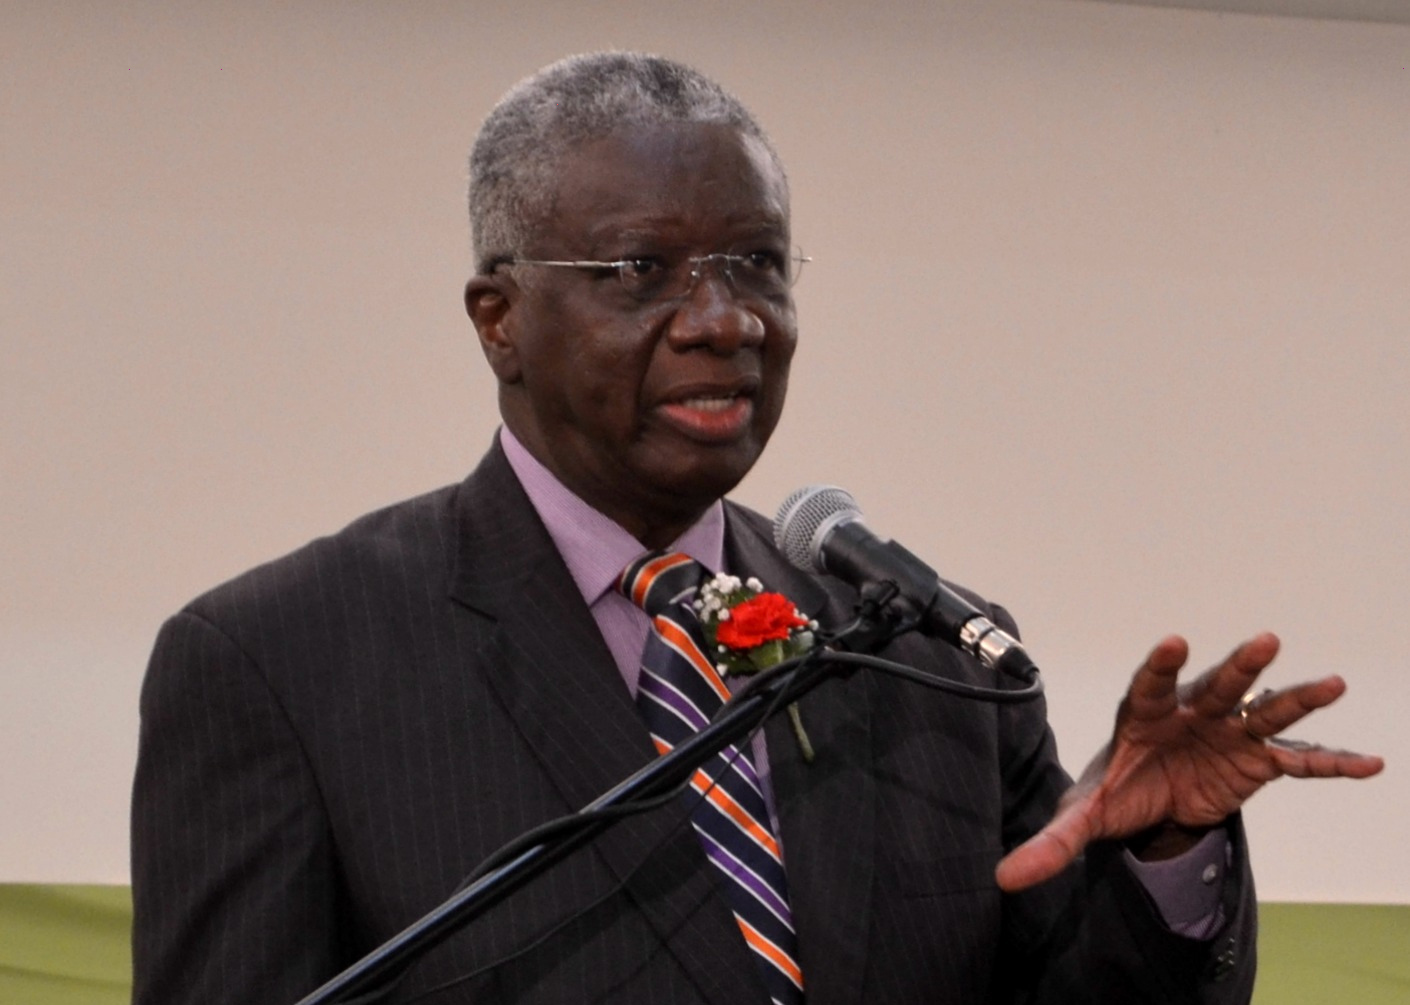 Photo of Opening Remarks By The  CARICOM Co-Chair Rt. Honourable Freundel Stuart, Q.C, M.P. Prime Minister Of Barbados at The Third CARICOM-Mexico Summit April 29,2014